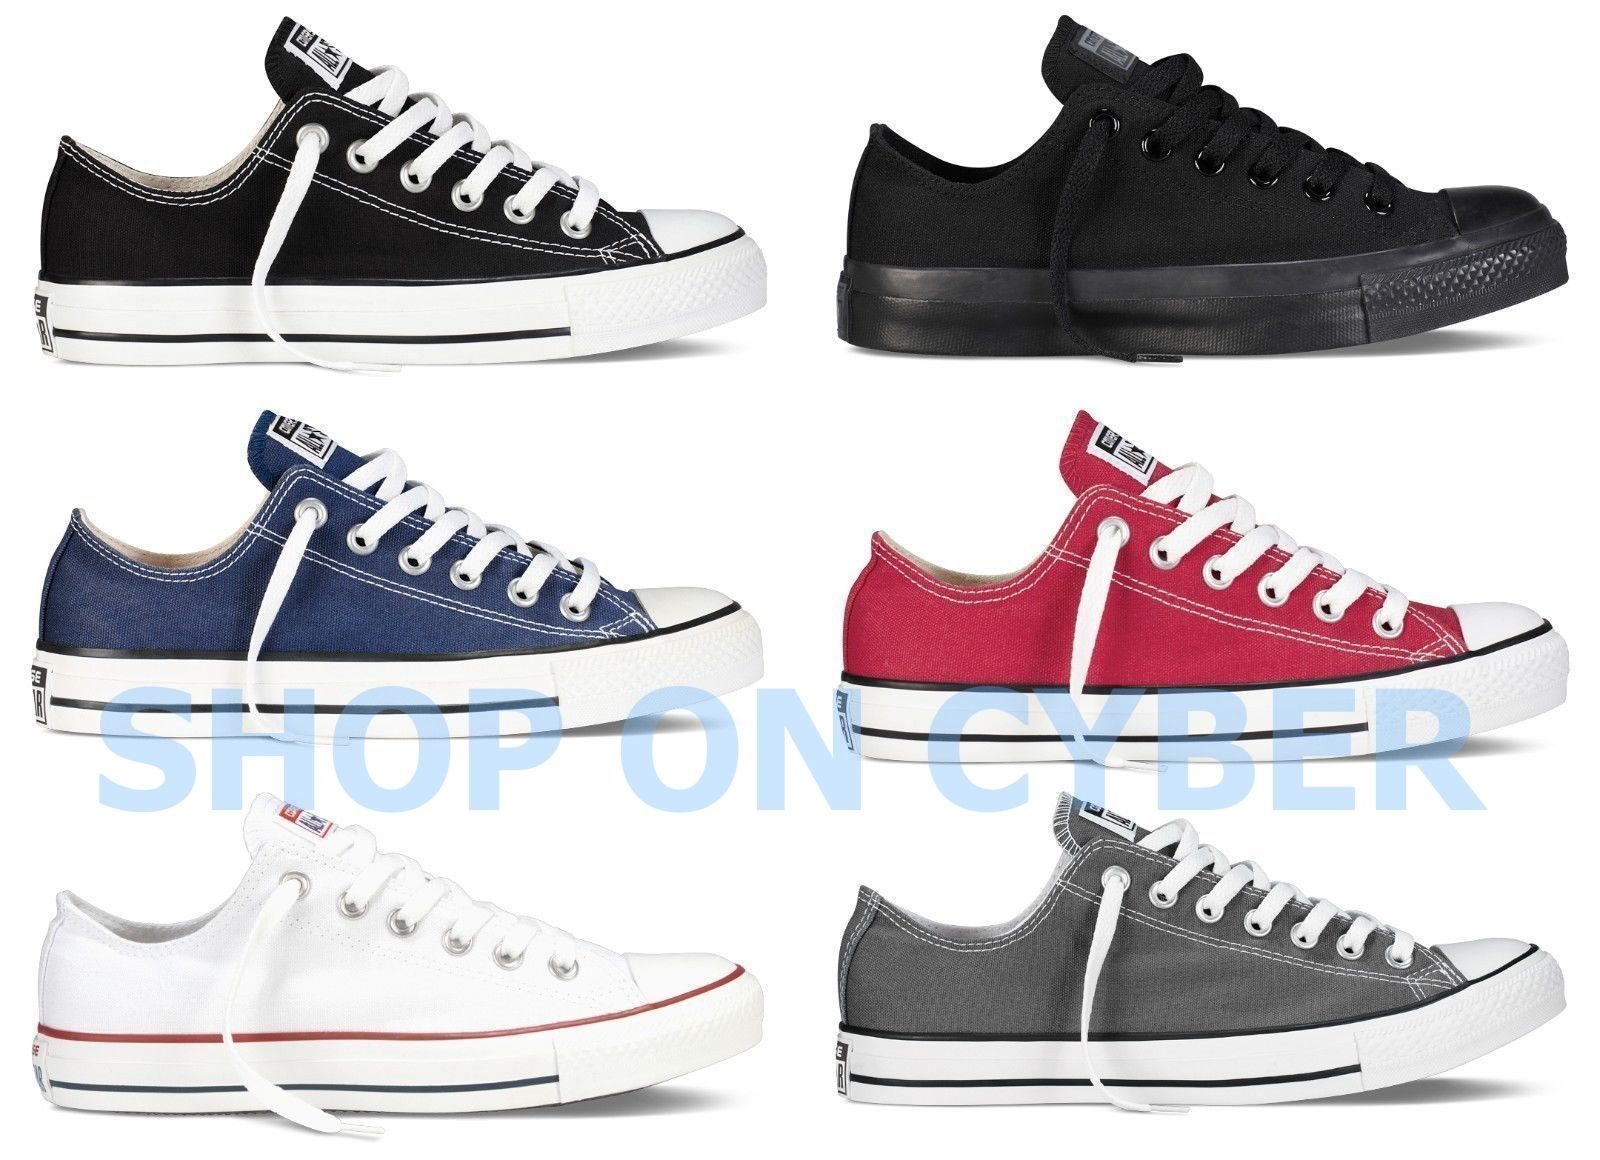 27e7f2a5a88e Click to enlarge. HomeFashionMen Converse All Star Chuck Taylor Canvas  Shoes Low Top Brand New All Size